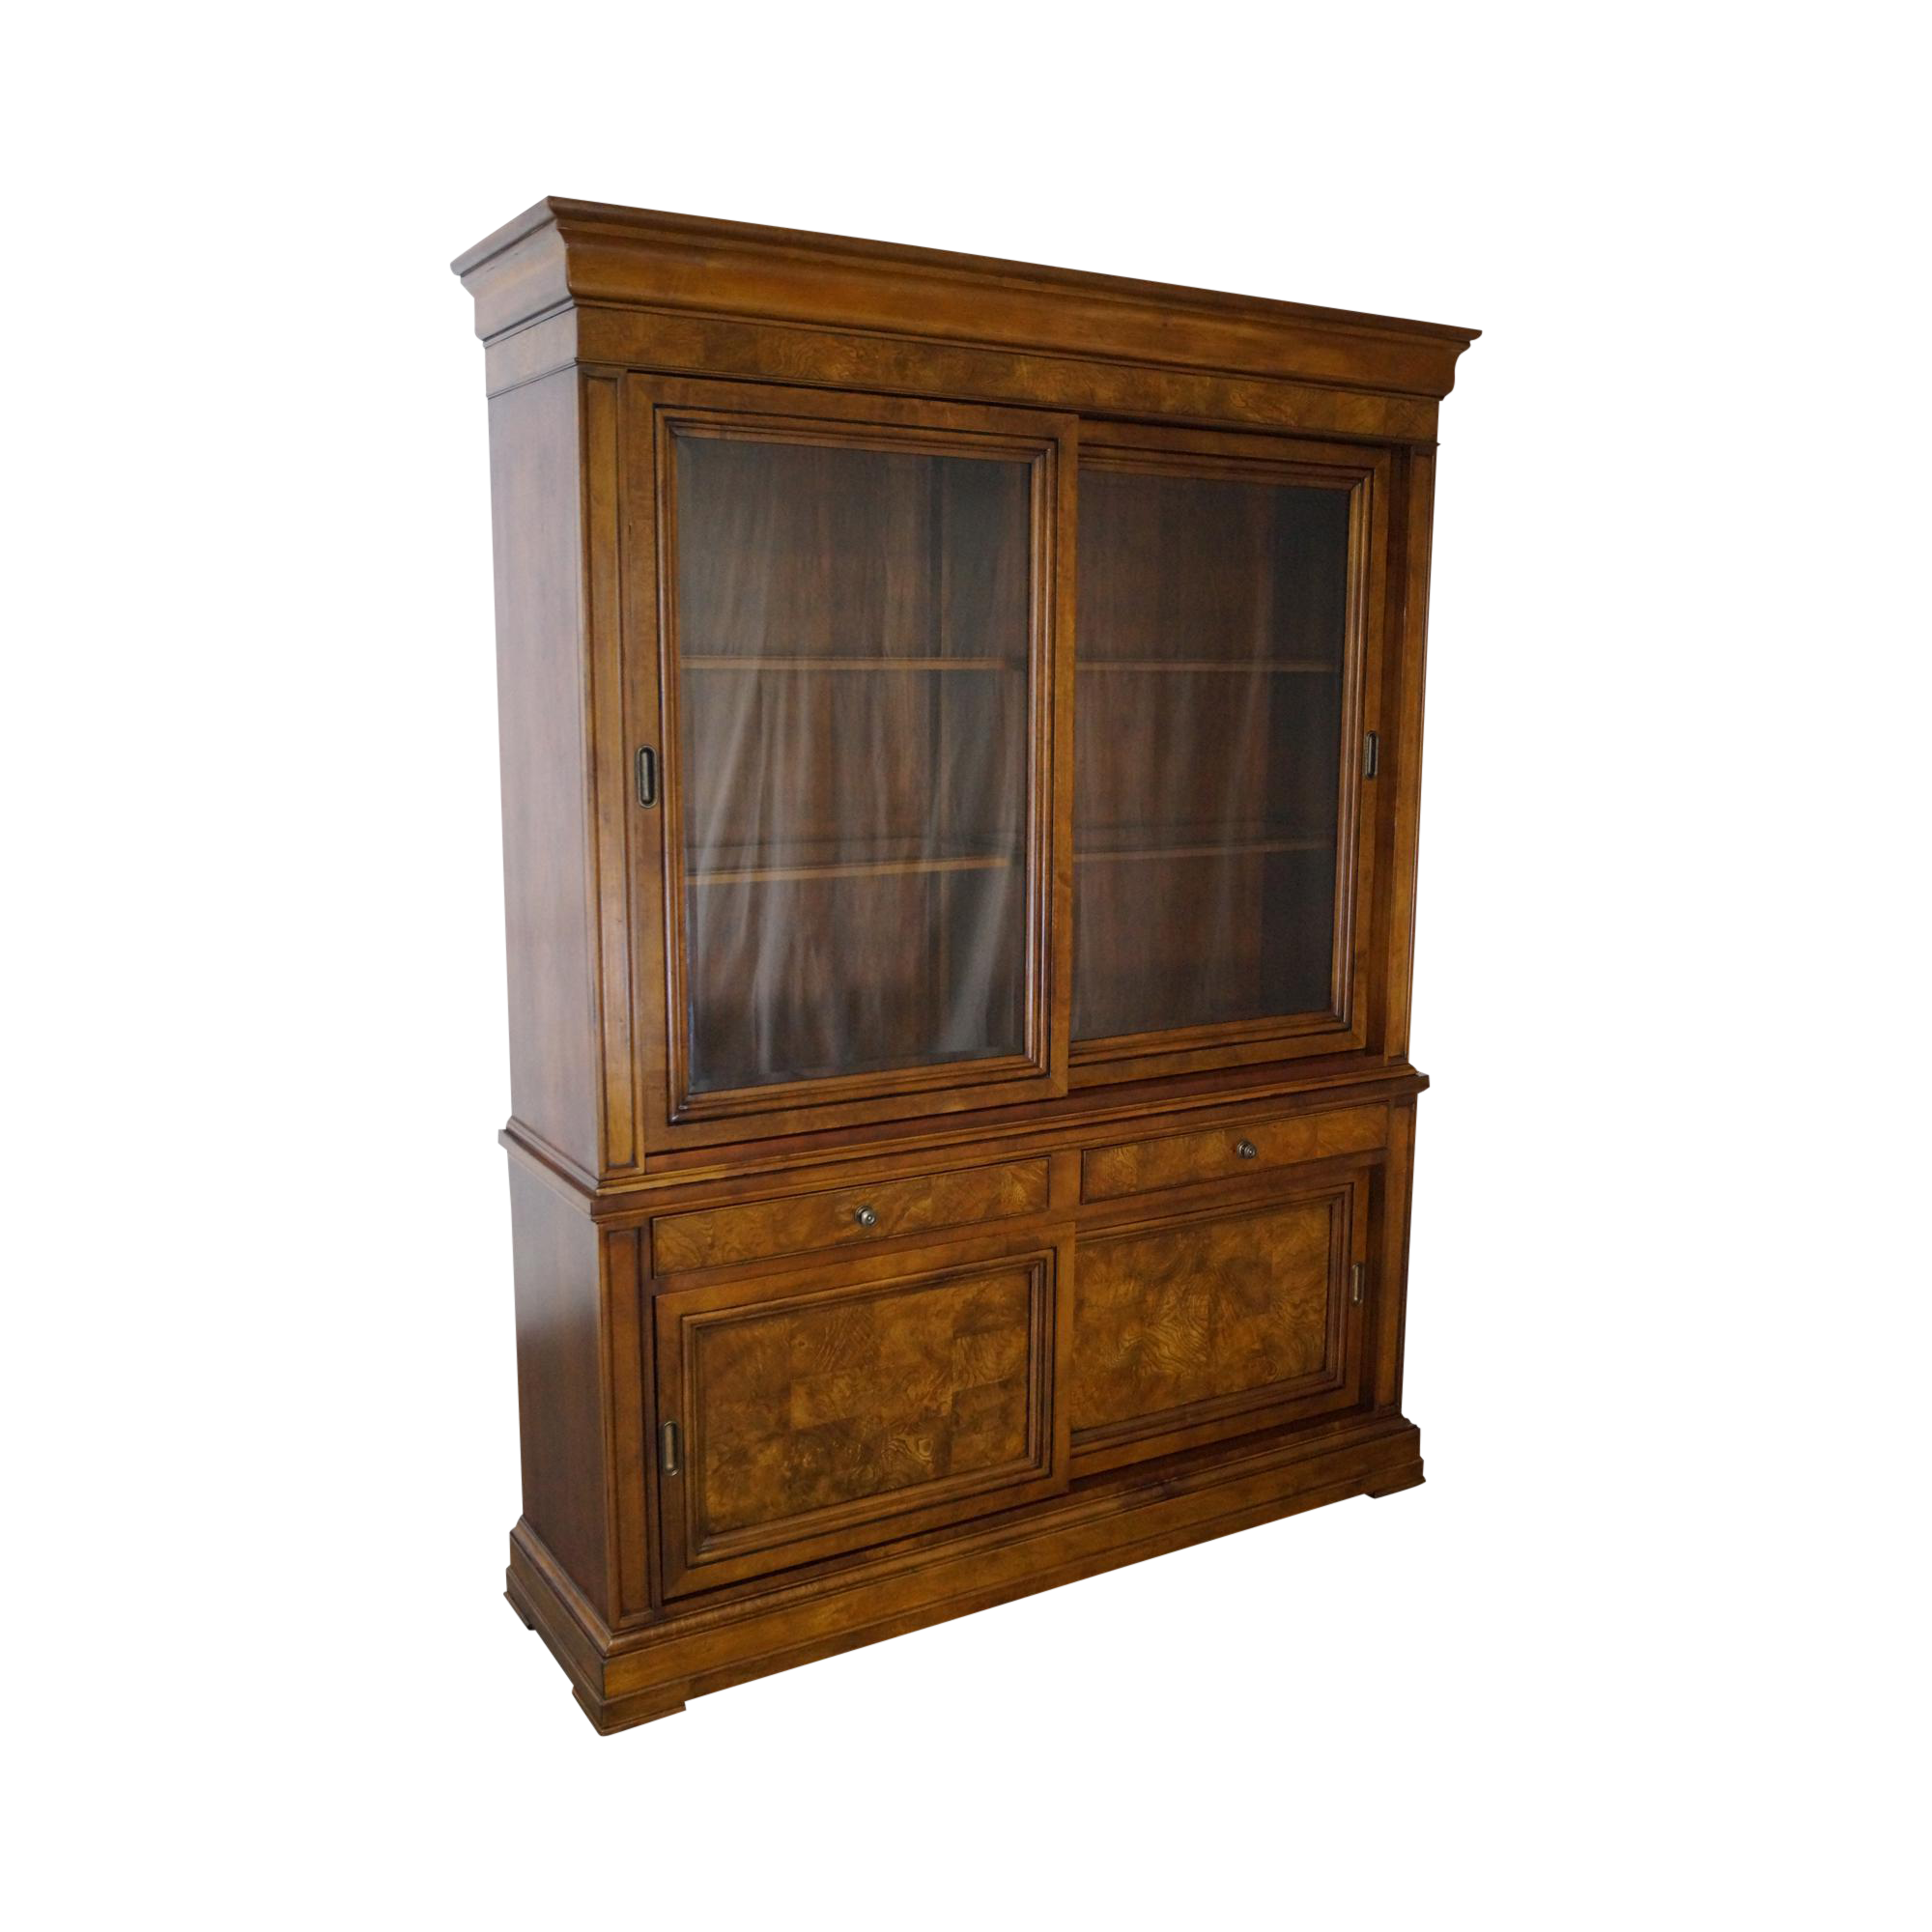 Beau Ethan Allen Townhouse Burl Wood Large Sliding Door Bookcase China Cabinet